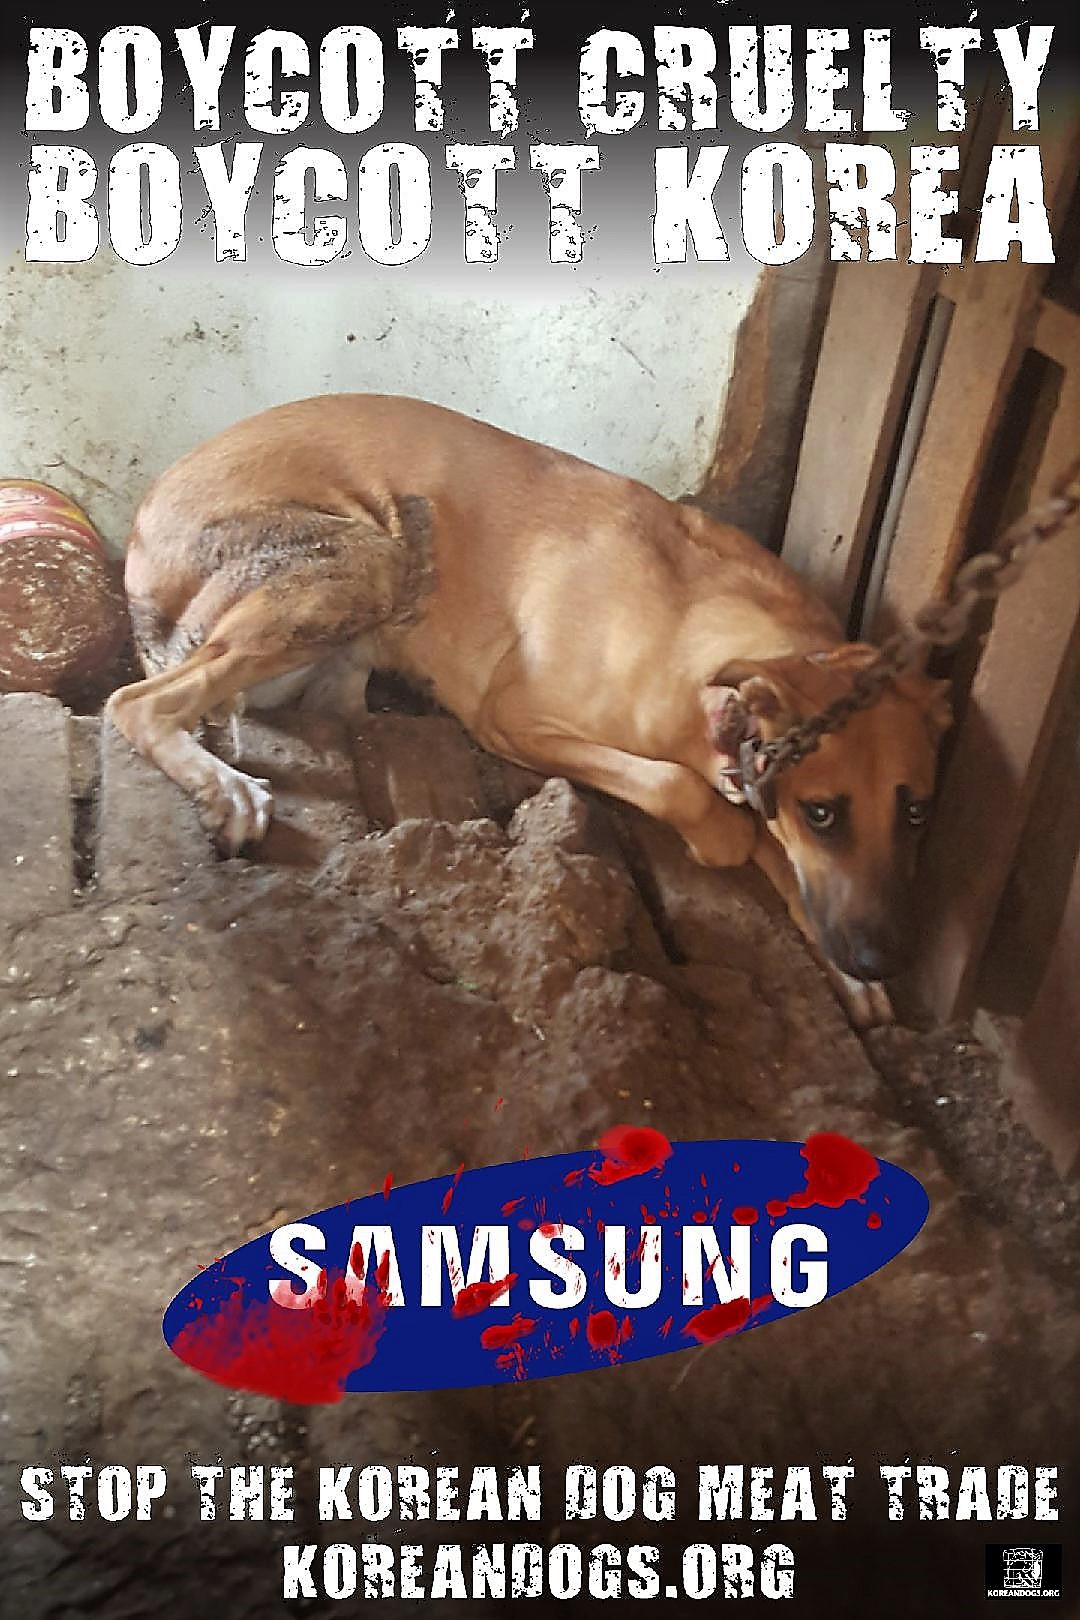 Samsung must speak out against the brutality of South Korea!